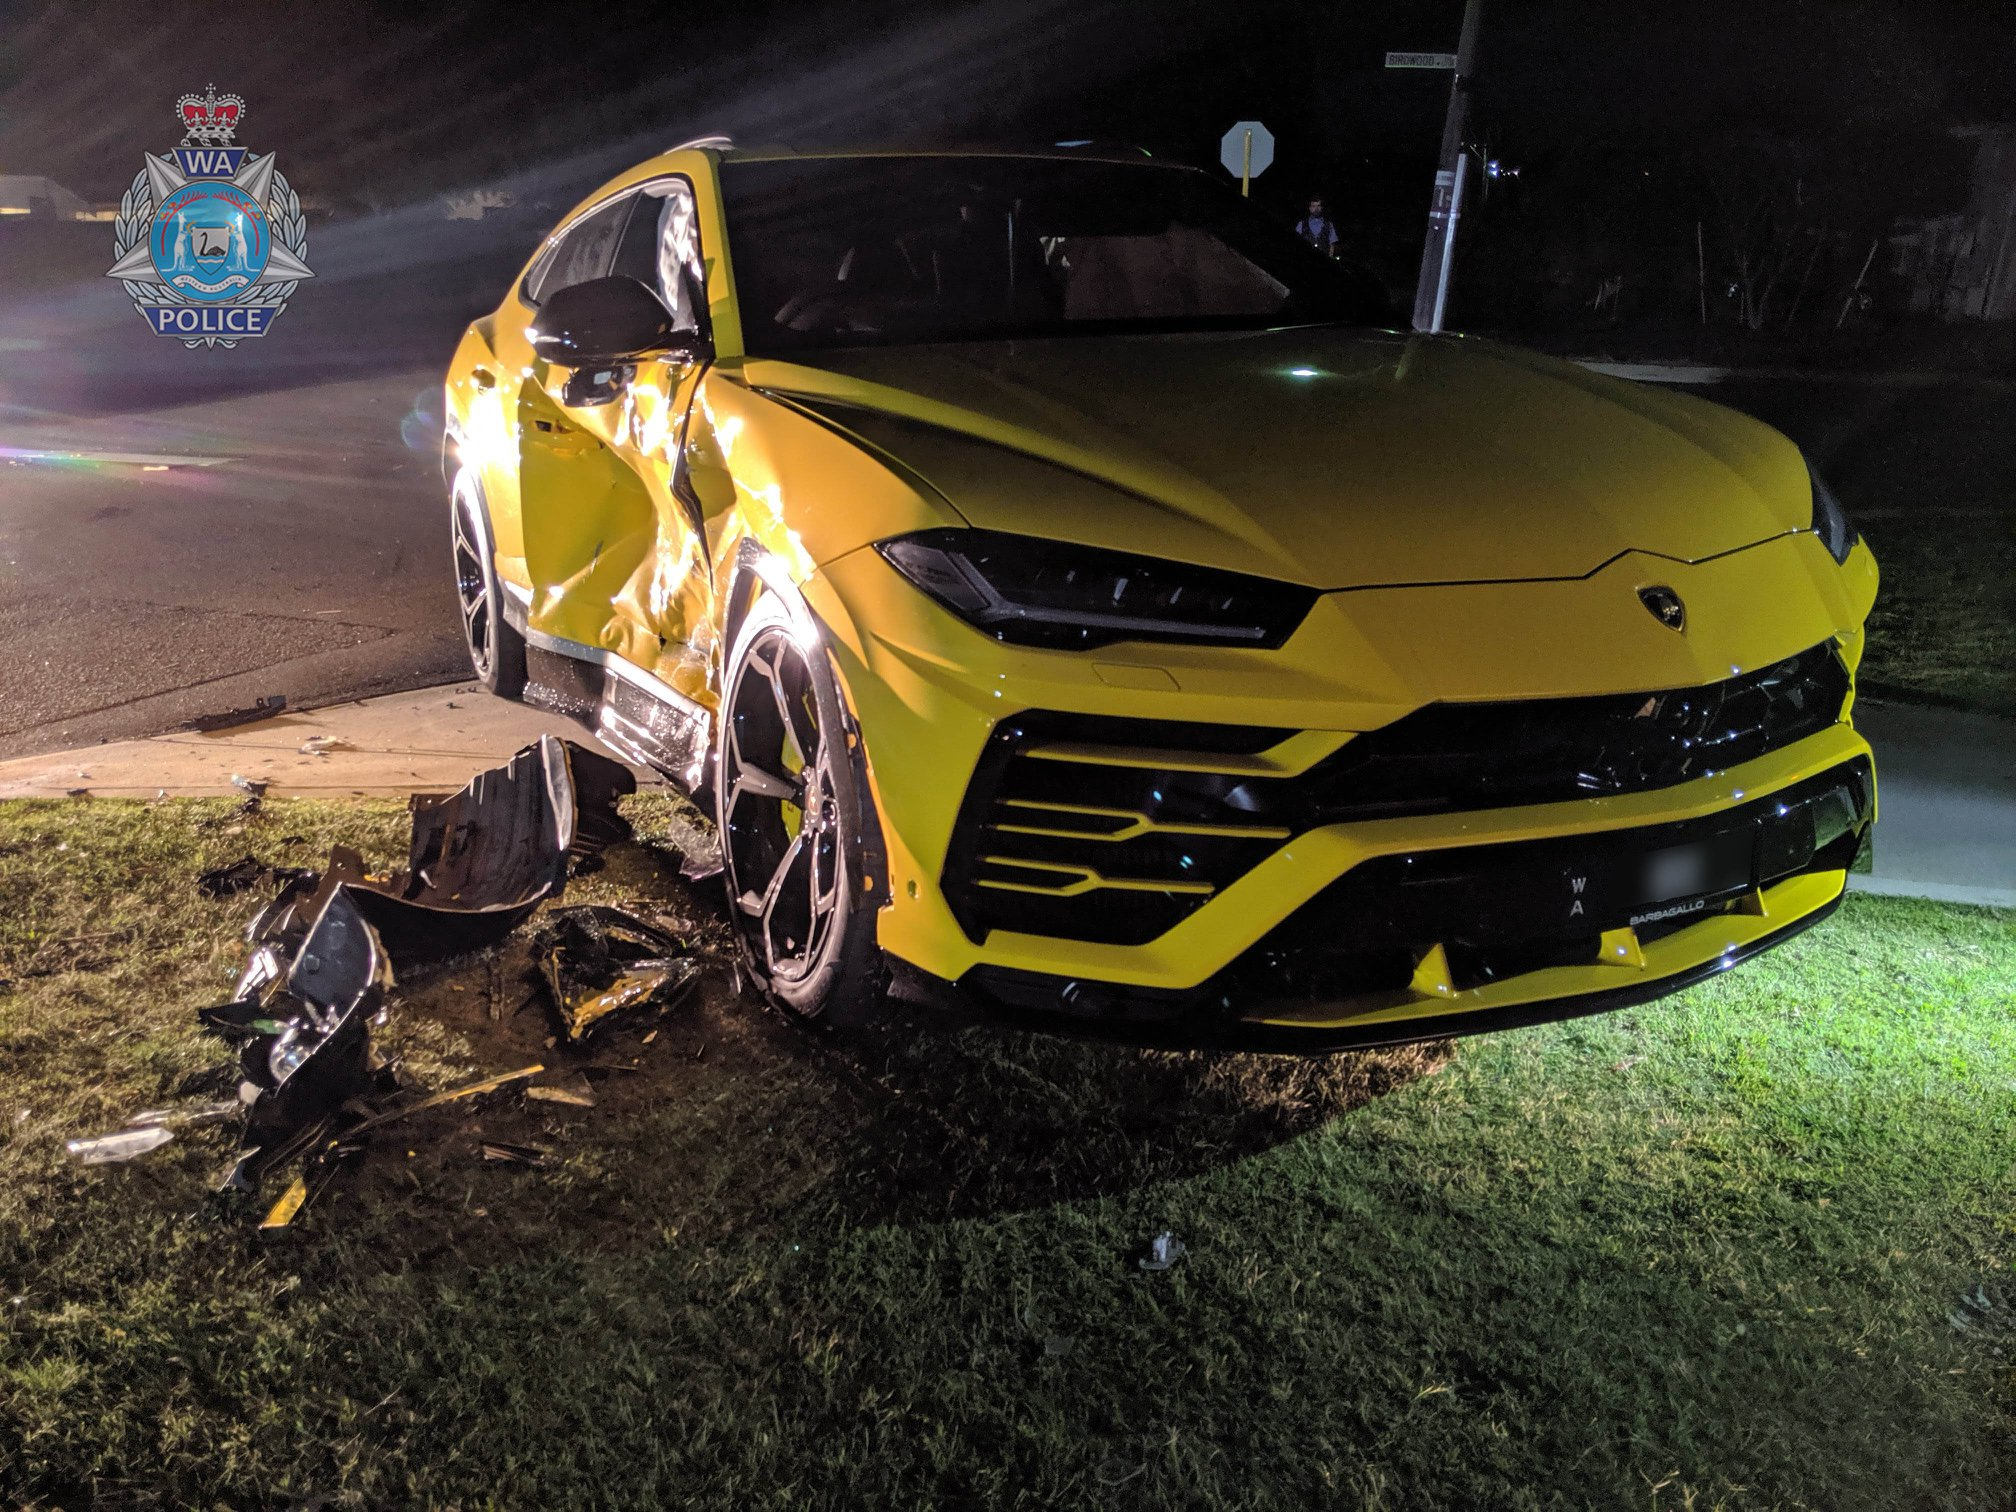 Teen crashes stolen vehicle into Lamborghini